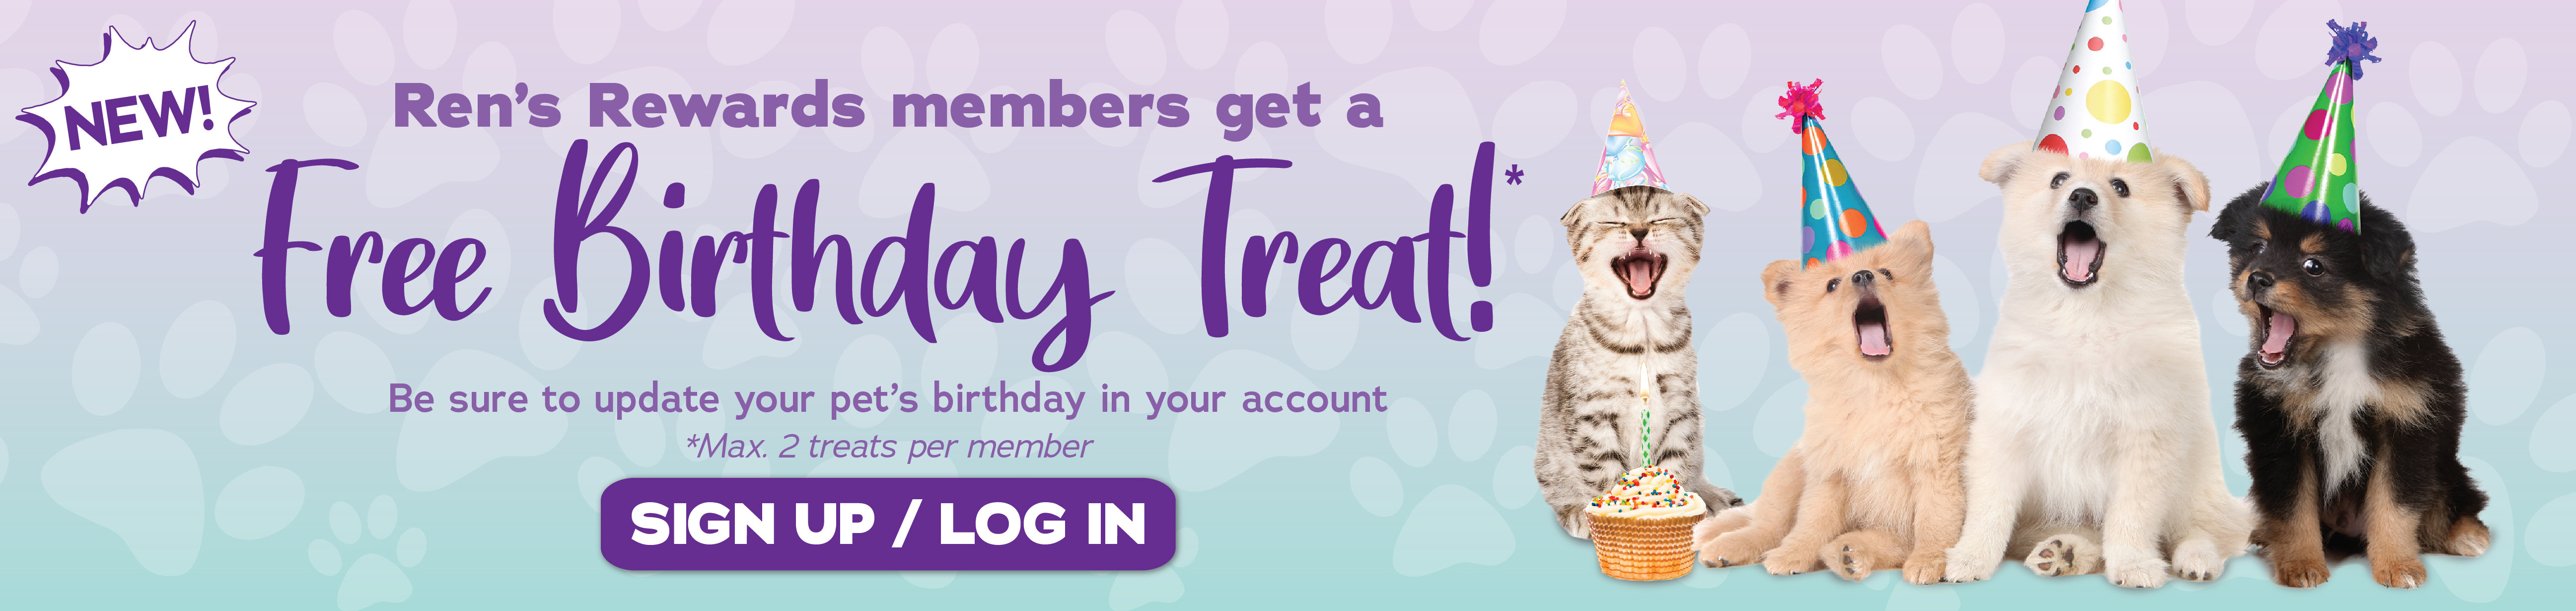 Ren's Rewards members get a Free Birthday Treat!* Max. 2 treats per member. Be sure to update your pet's birthday in your account